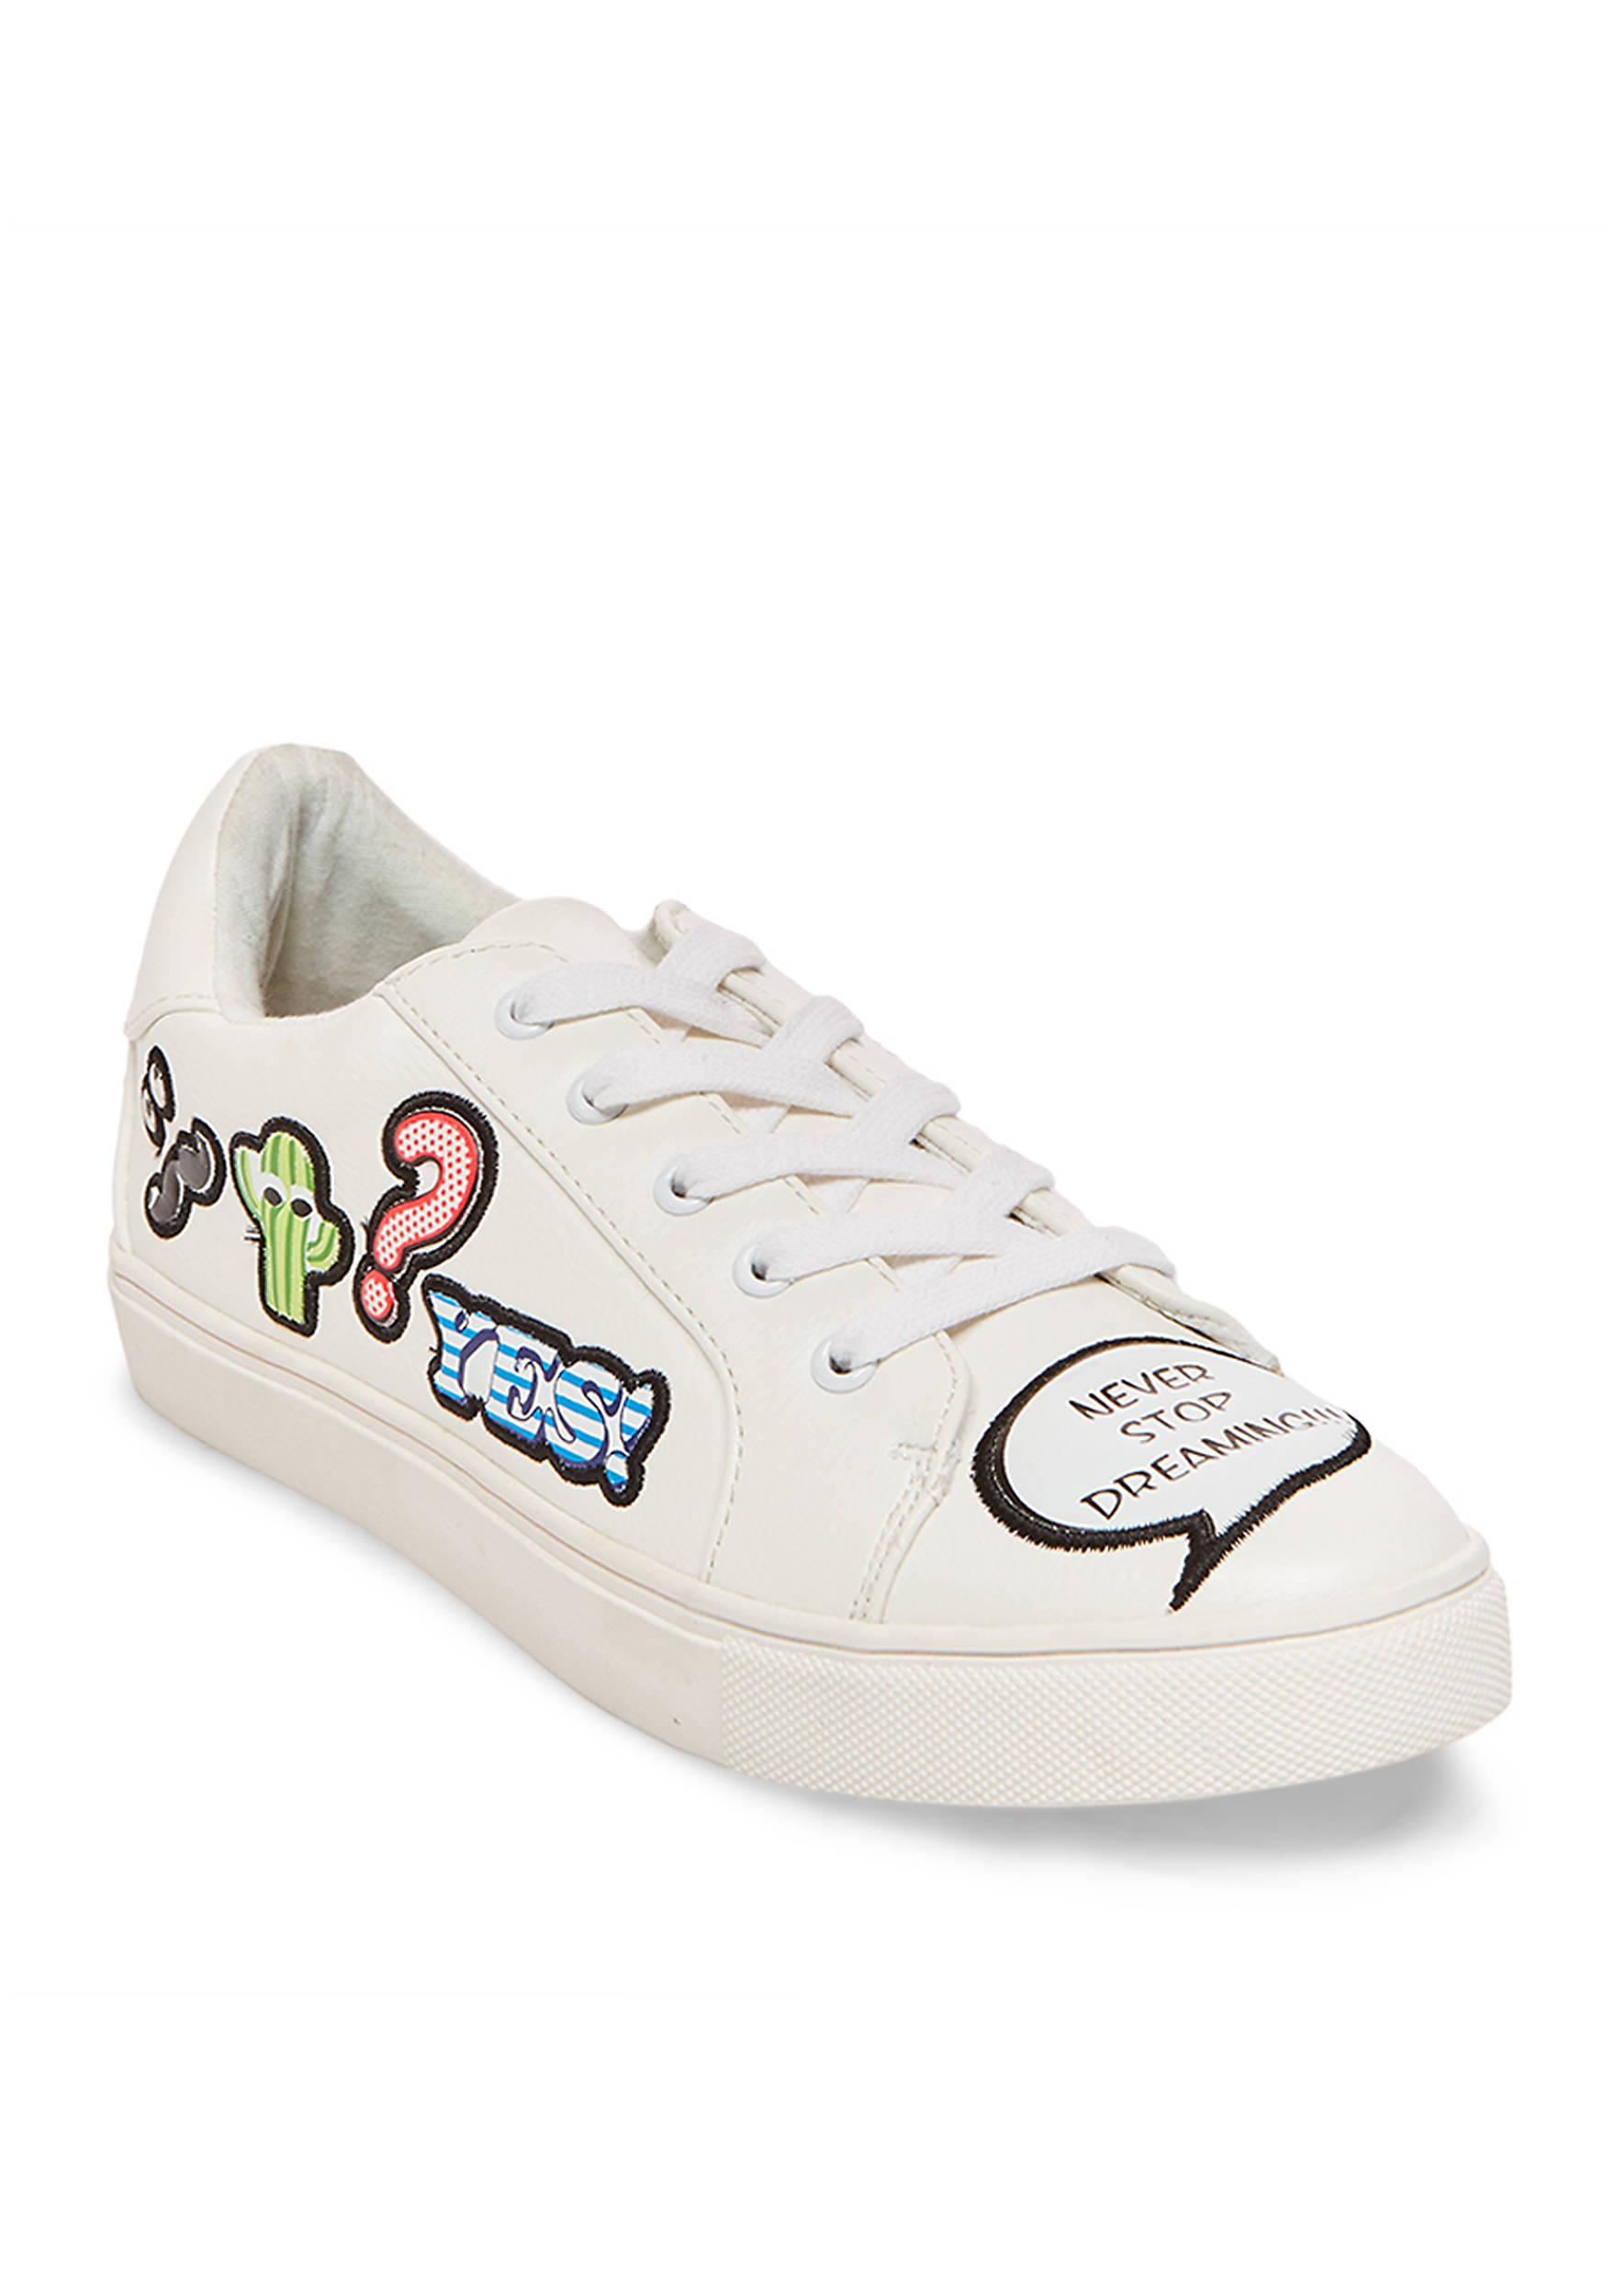 Betsey Johnson Goly Patch Lace Up Sneaker